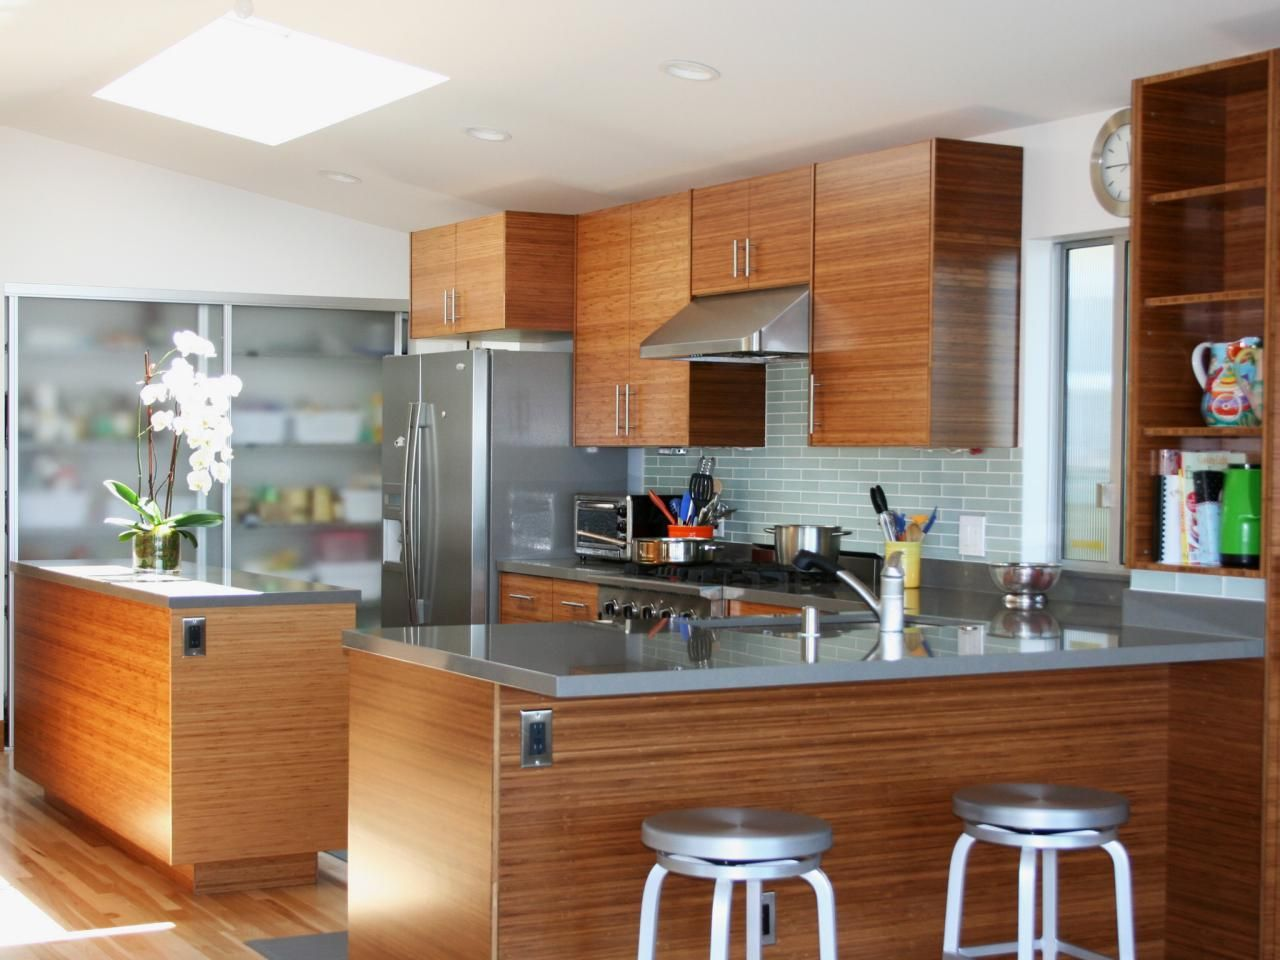 Best kitchen countertop pictures color u material ideas hgtv